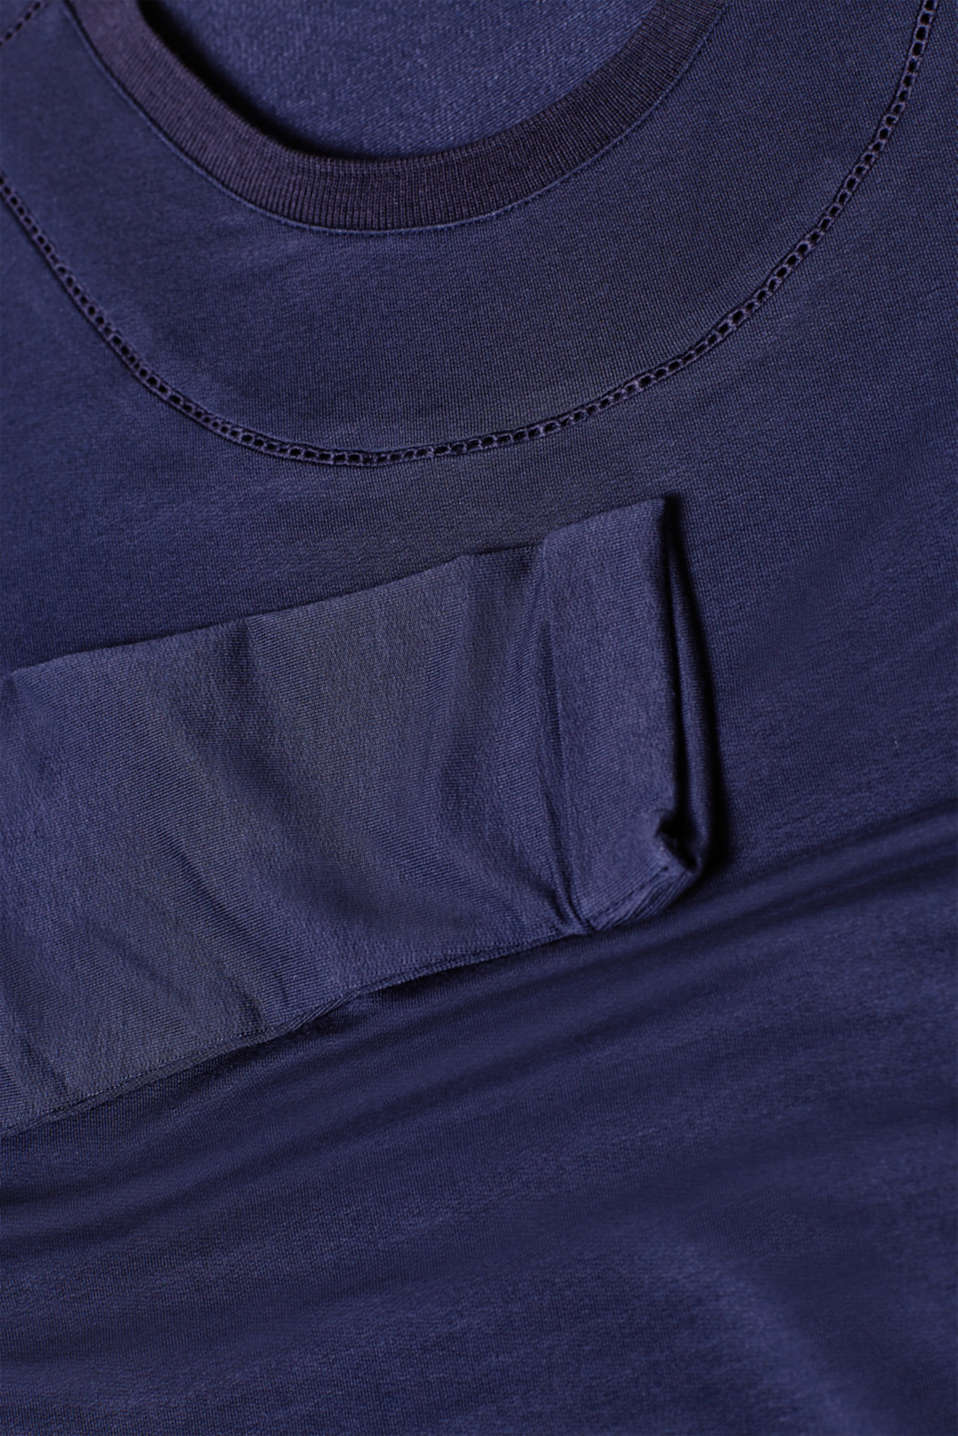 Stretch long sleeve top with open-work pattern trims, LCNIGHT BLUE, detail image number 4